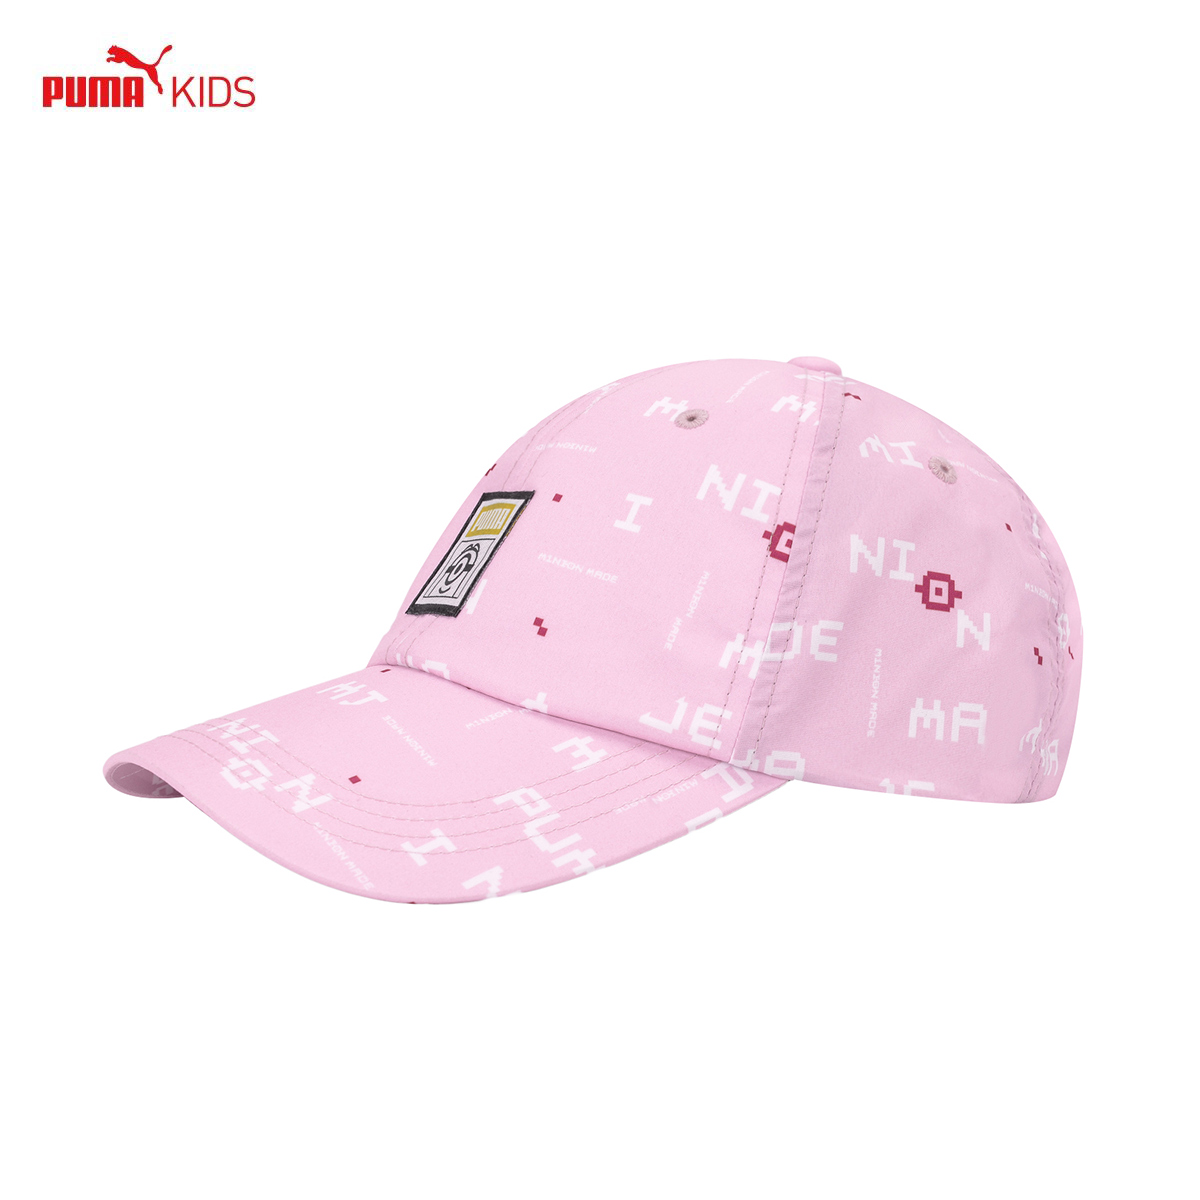 c17816994f7 PUMA Puma children s 2018 autumn new sun hat boys and girls MINIONSBBCAP  small yellow cap. Zoom · lightbox moreview · lightbox moreview ...